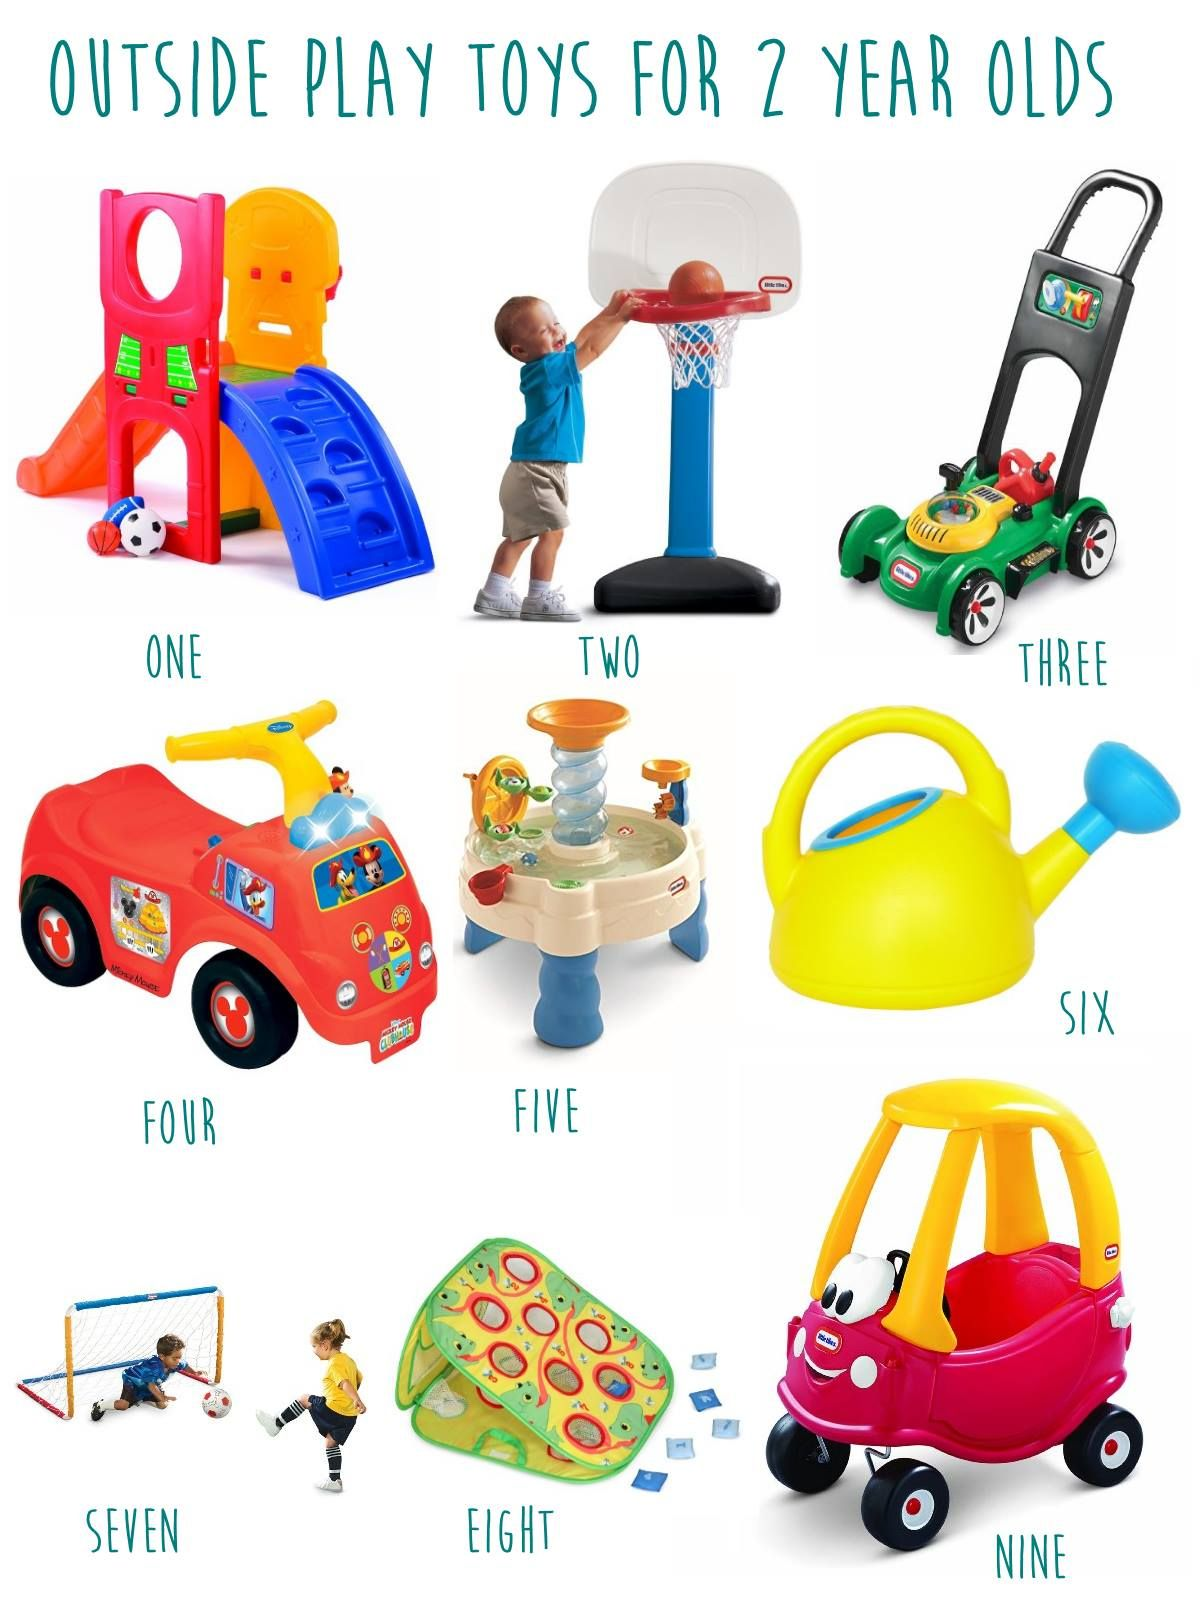 Toys For 0 2 Years Old : Year old toy guide outside gifts pinterest boys